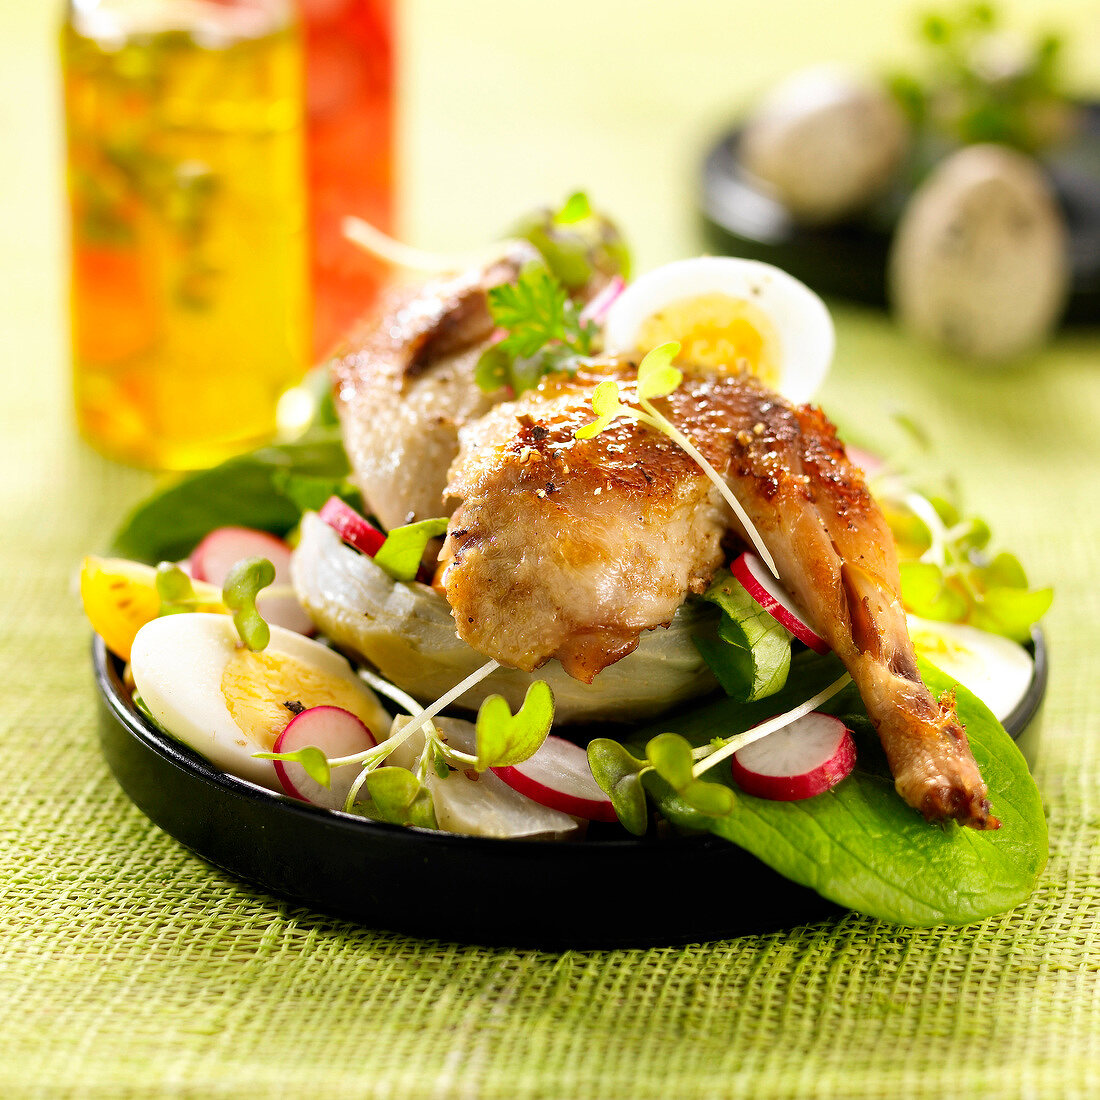 Confit quail with artichoke bases,radishes and hard-boiled eggs